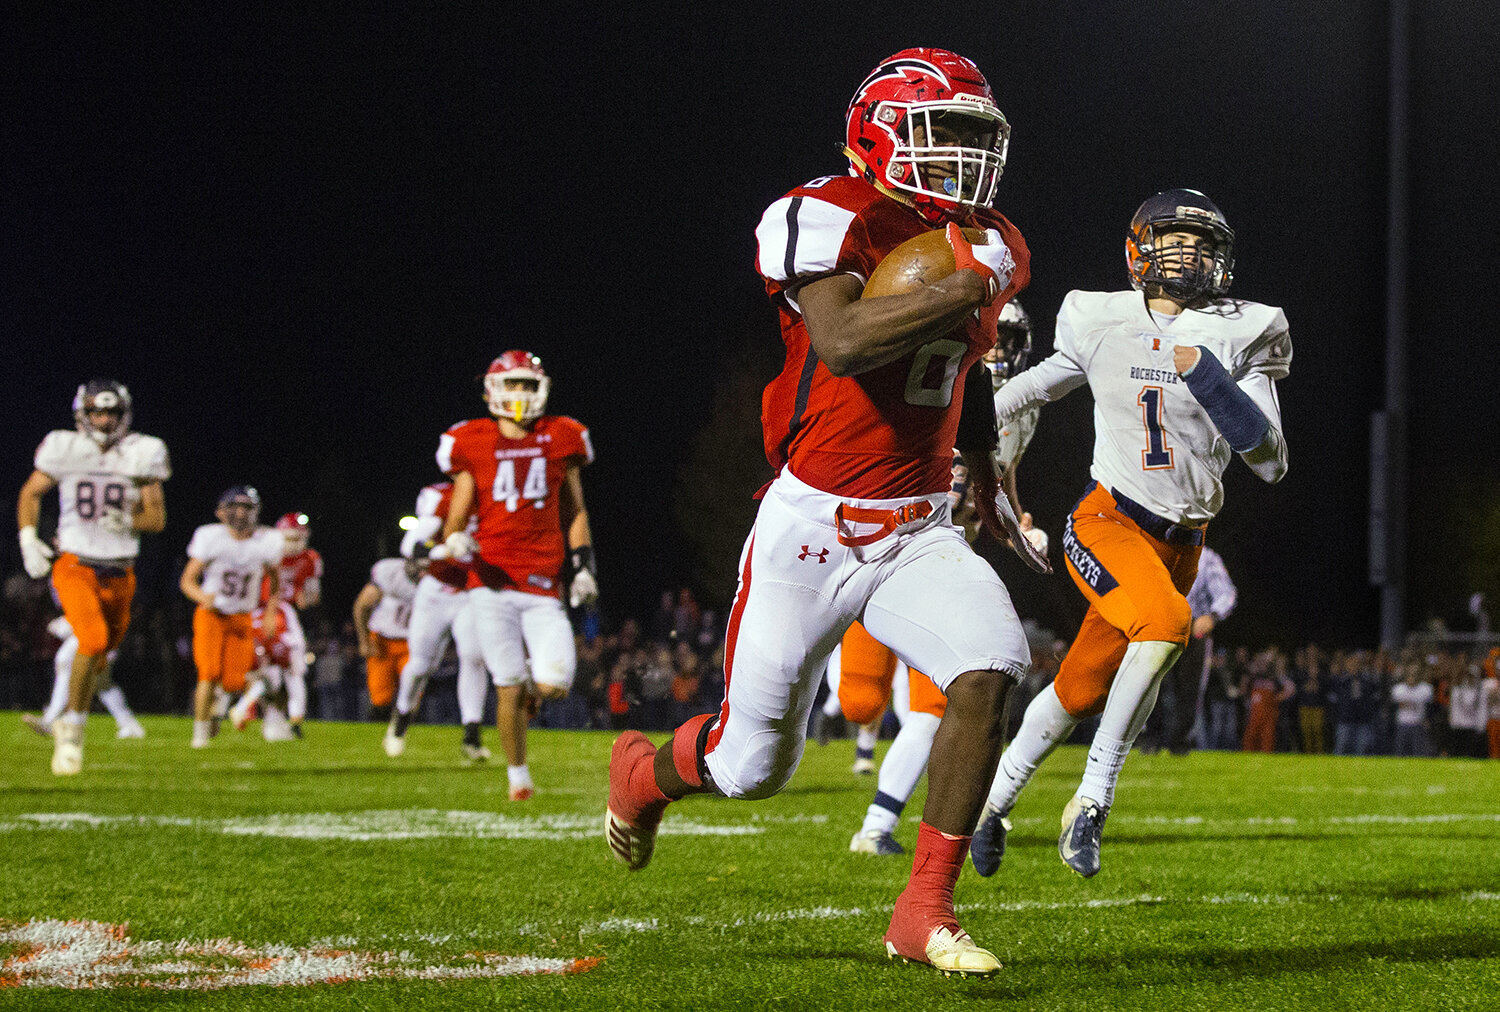 Glenwood's Narkel LeFlore (6) sprints for the endzone and another first half touchdown against Rochester at Glenwood High School Friday, Oct. 25, 2019. [Ted Schurter/The State Journal-Register]